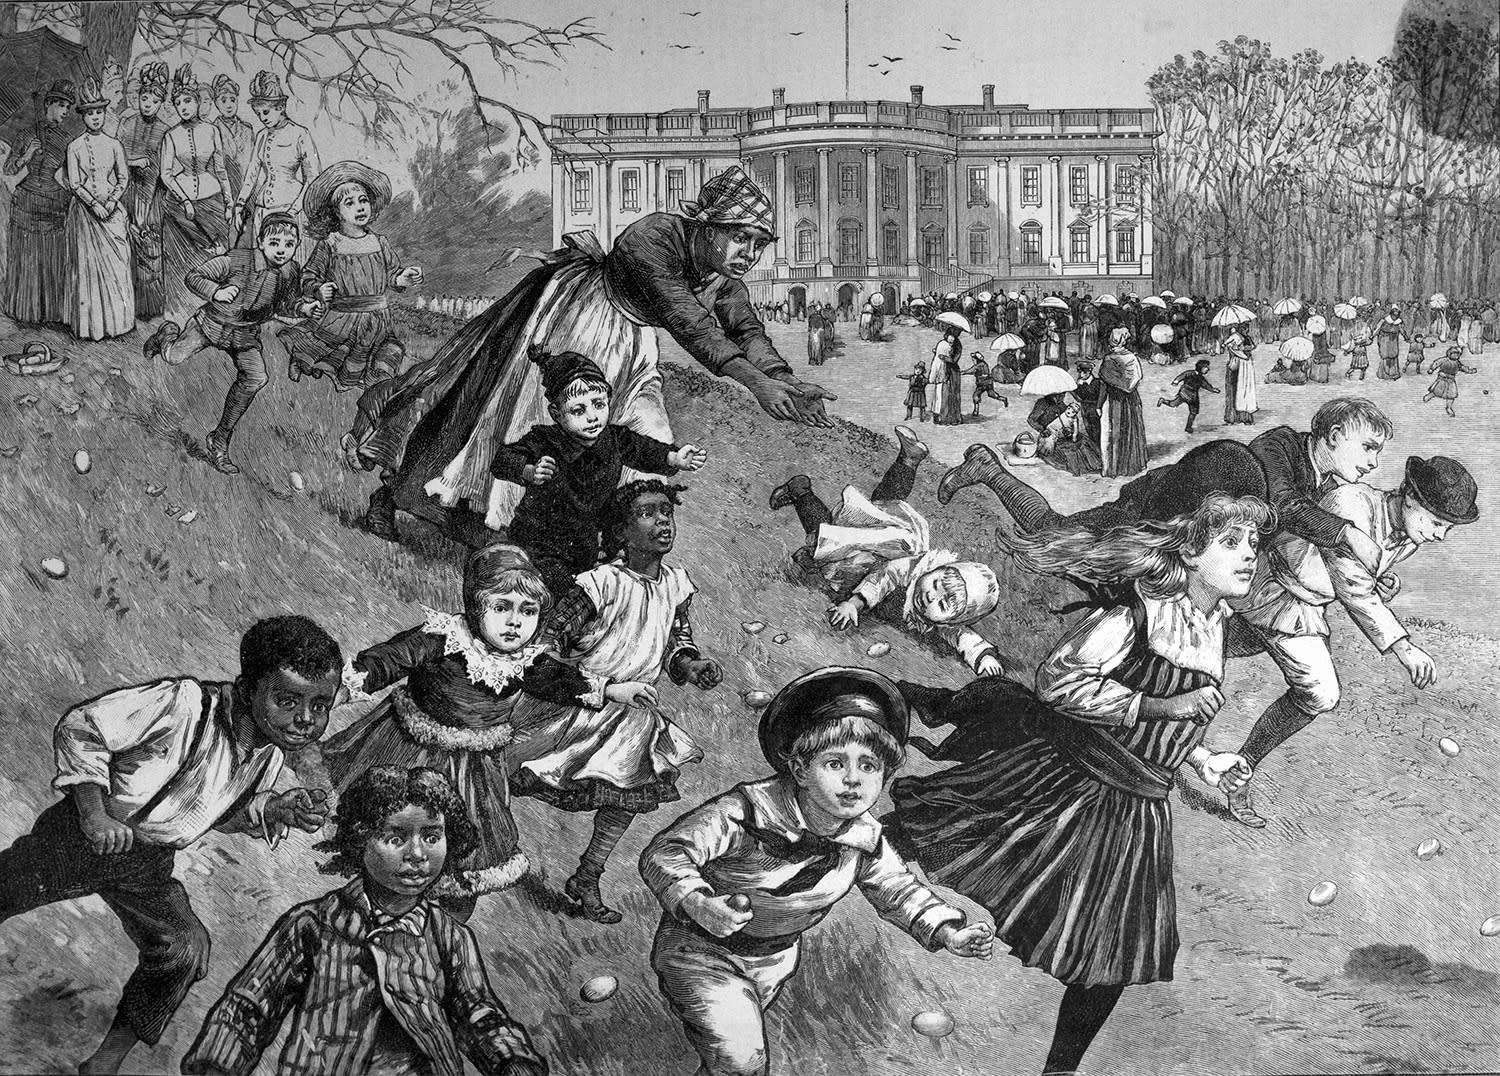 <p>An illustration shows a nanny running after a group of children who are participating in an egg-rolling contest on the grounds of the White House, circa late 19th century. This was part of the Easter celebration in Washington. (Photo: Bettmann/Getty Images) </p>